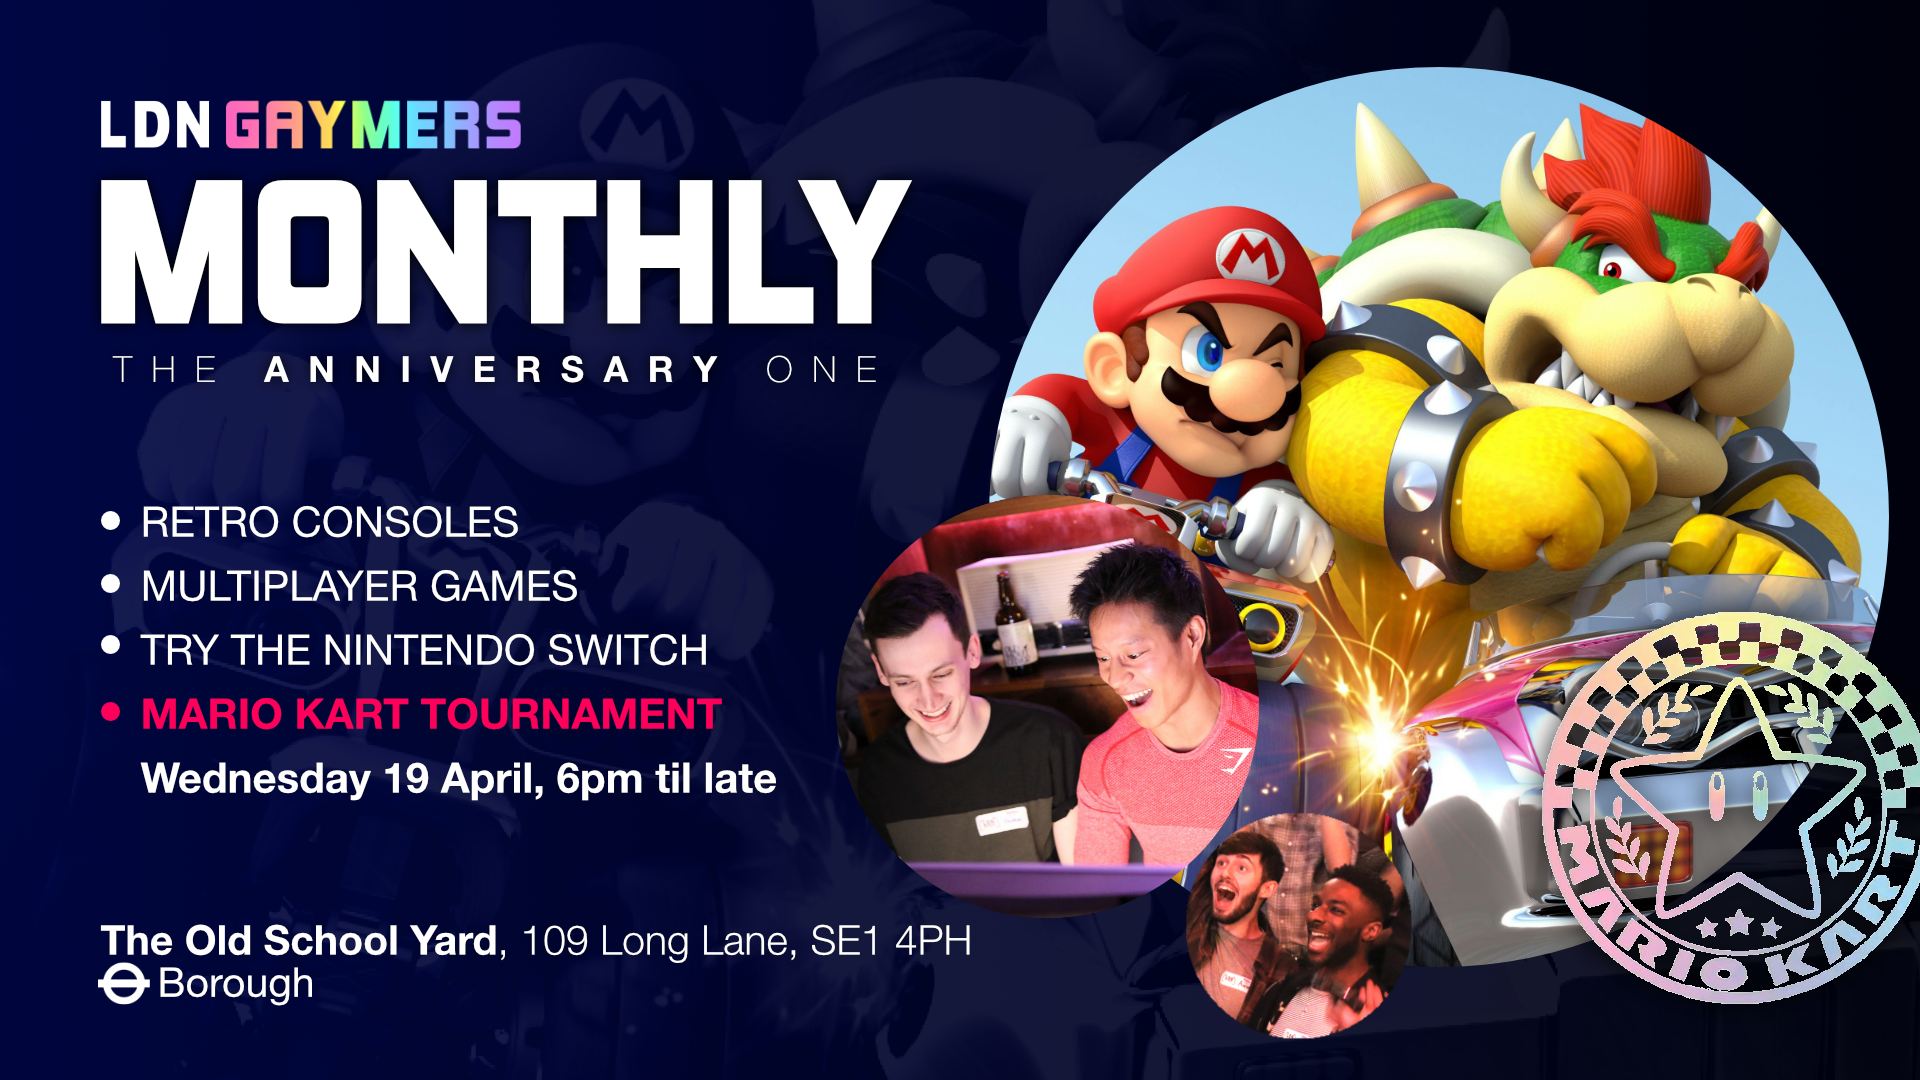 LDN Gaymers Monthly: The Anniversary One